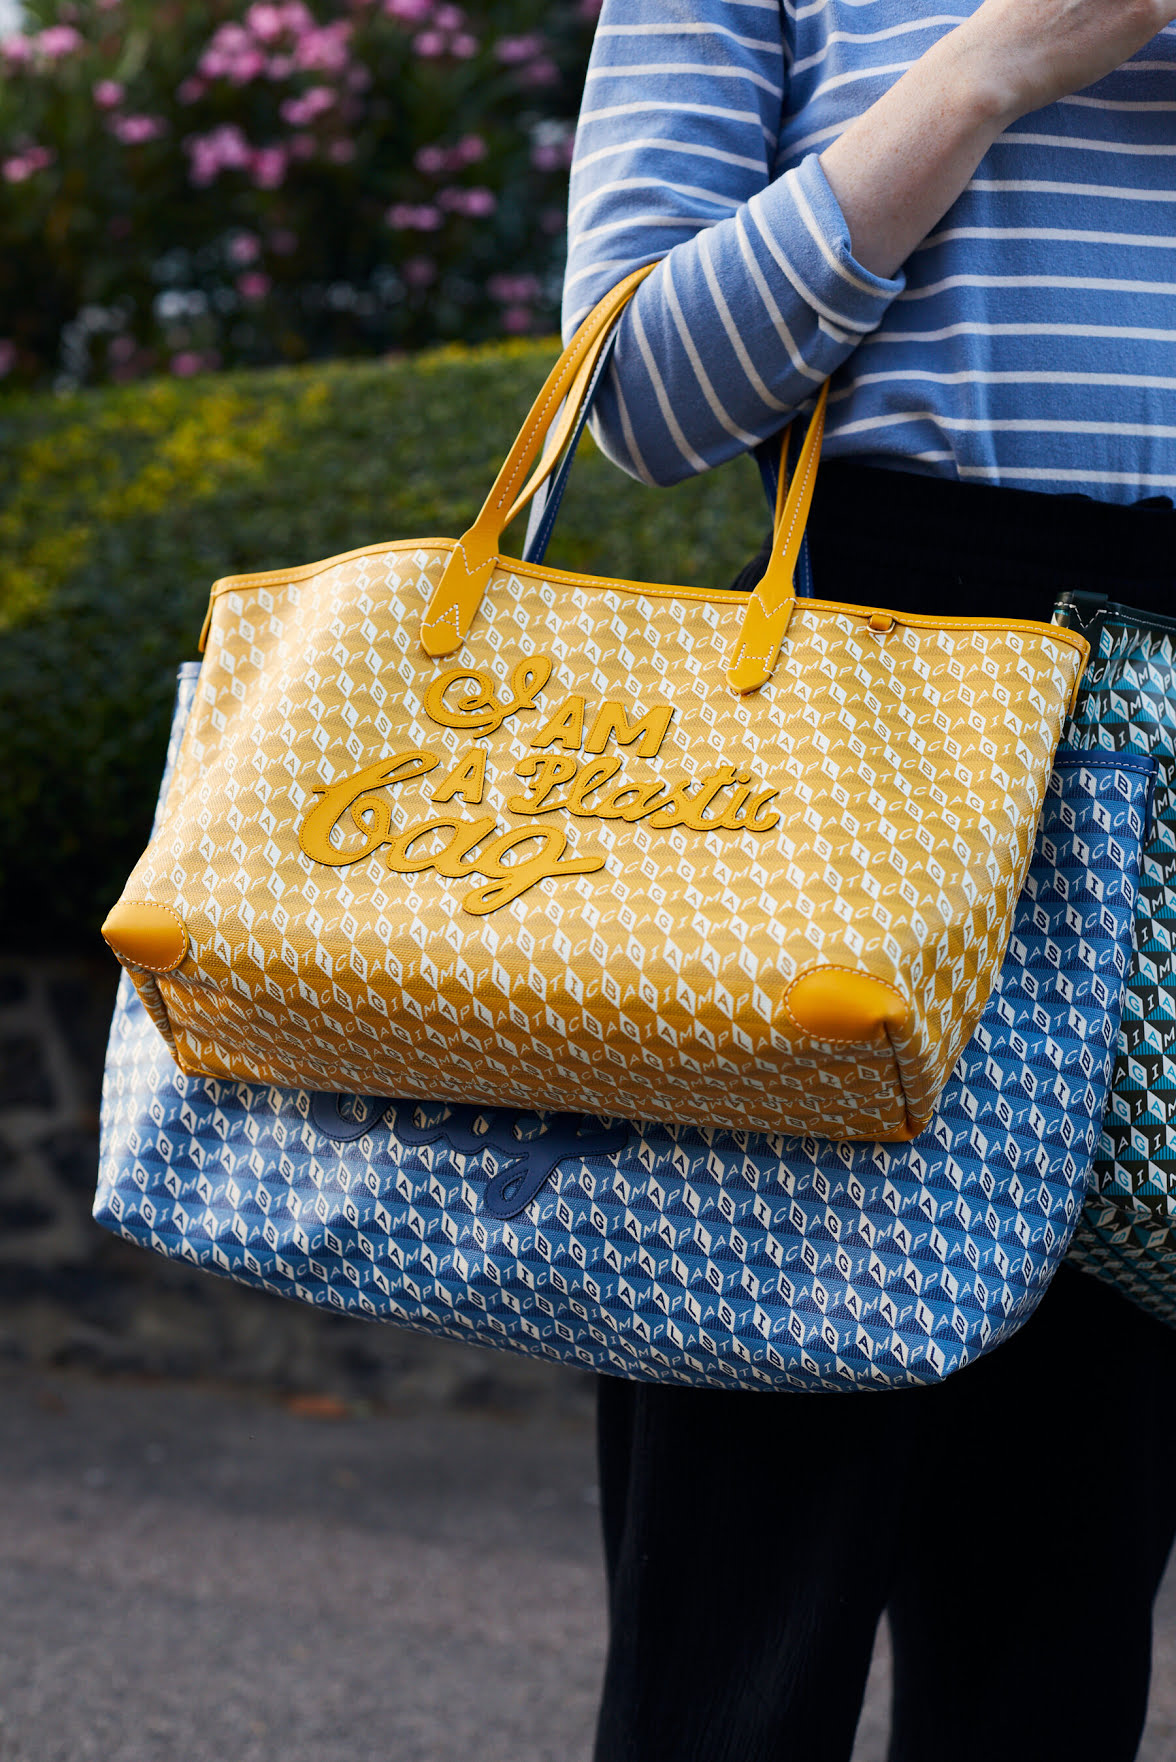 Ms. Hindmarch's updated version, made from recycled plastic.